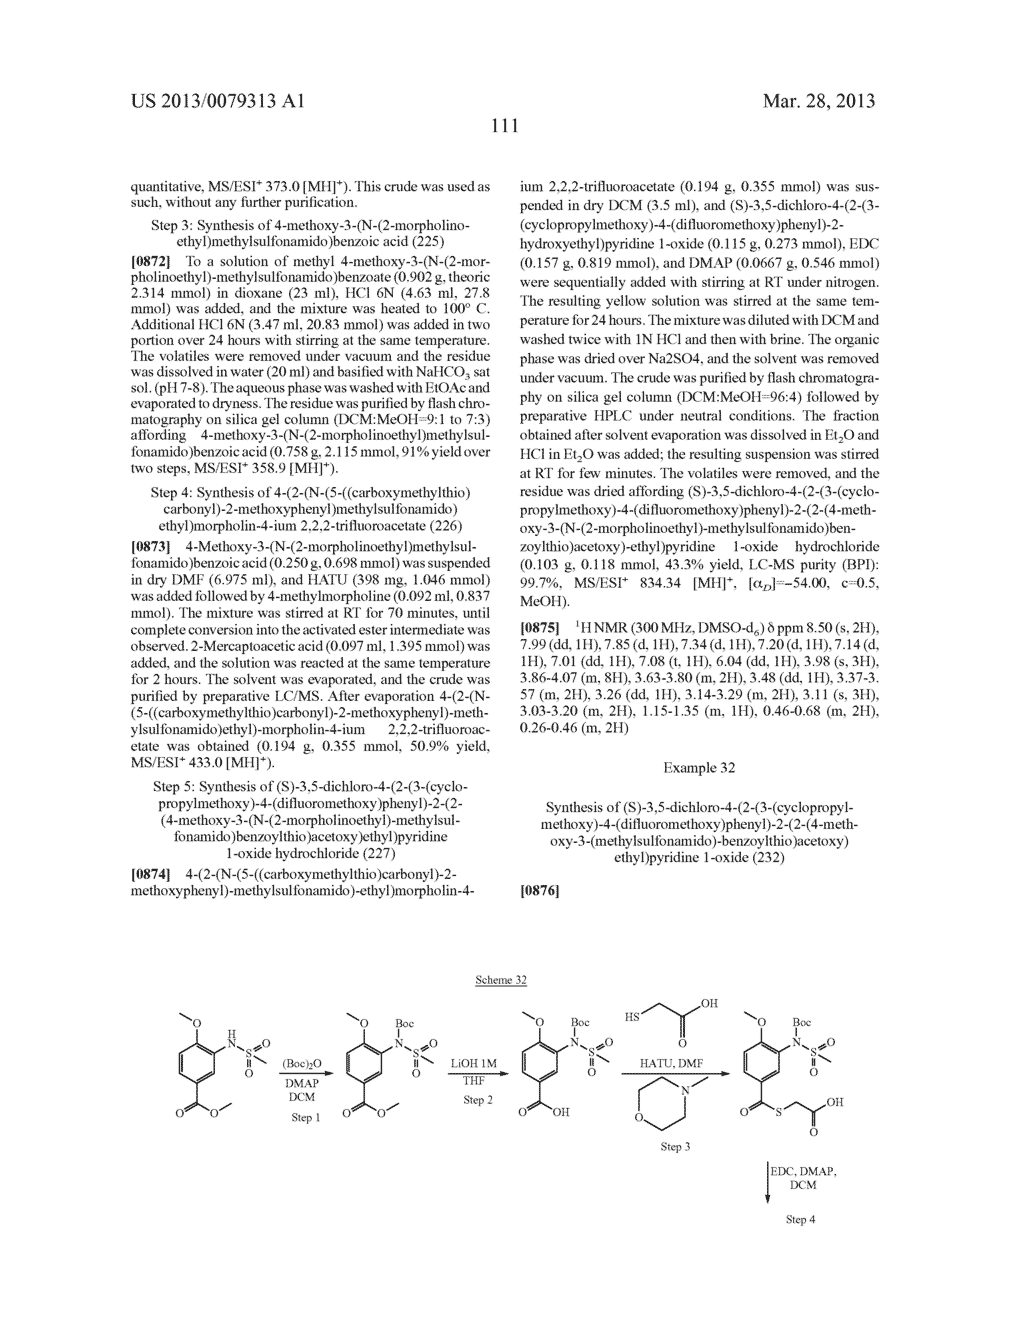 DERIVATIVES OF 1-PHENYL-2-PYRIDINYL ALKYL ALCOHOLS AS PHOSPHODIESTERASE     INHIBITORS - diagram, schematic, and image 112